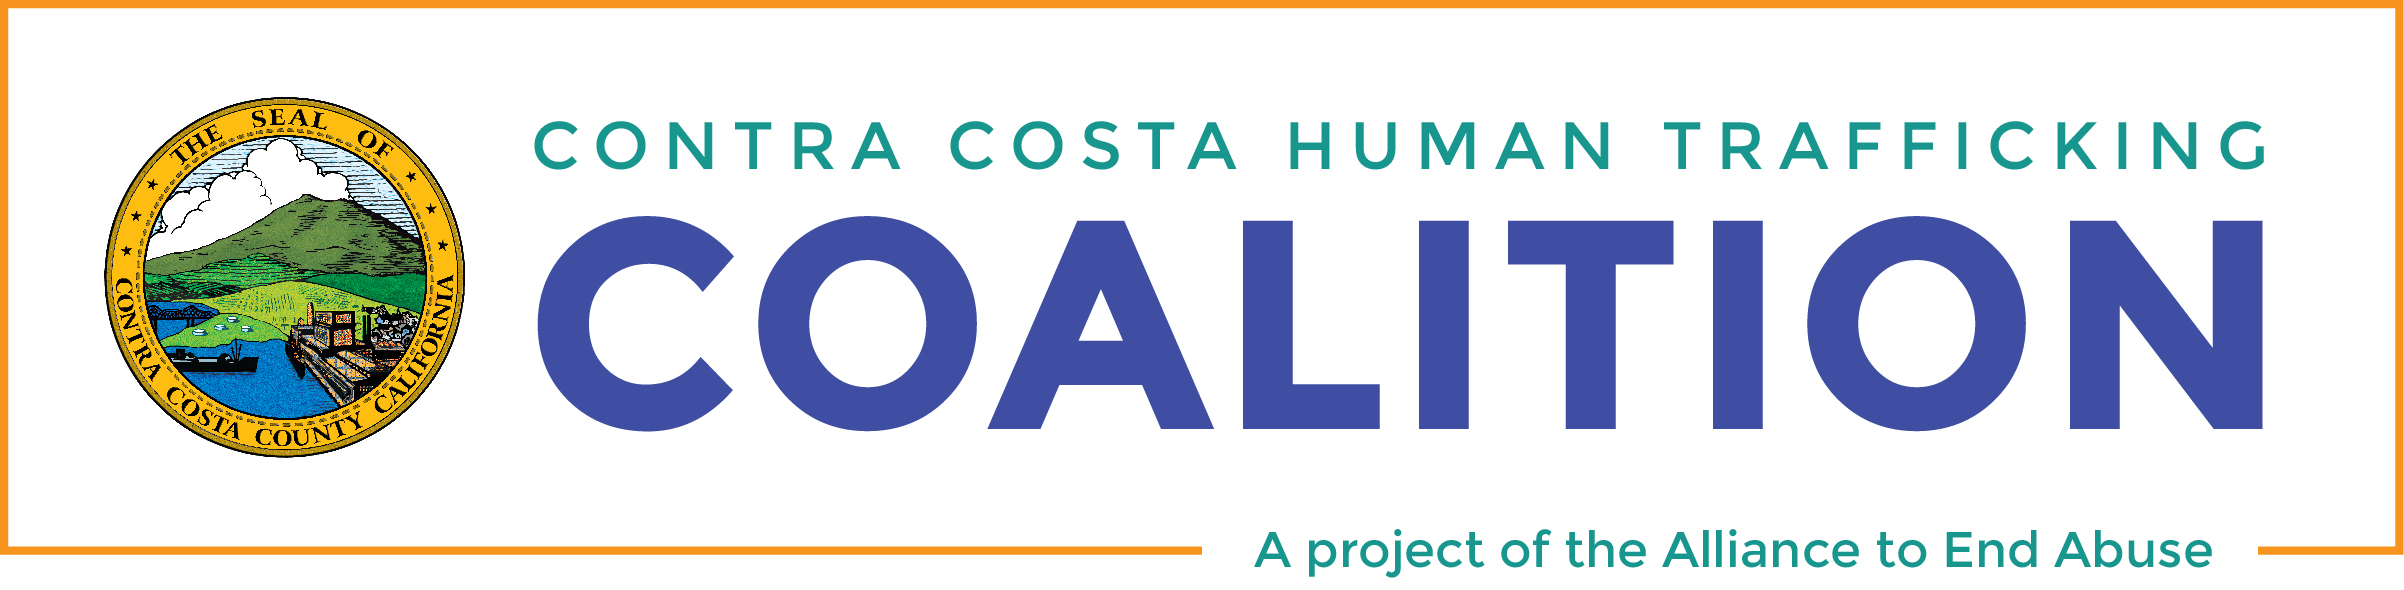 Contra Costa Human Trafficking Coalition logo_with seal_rgb (2).jpg